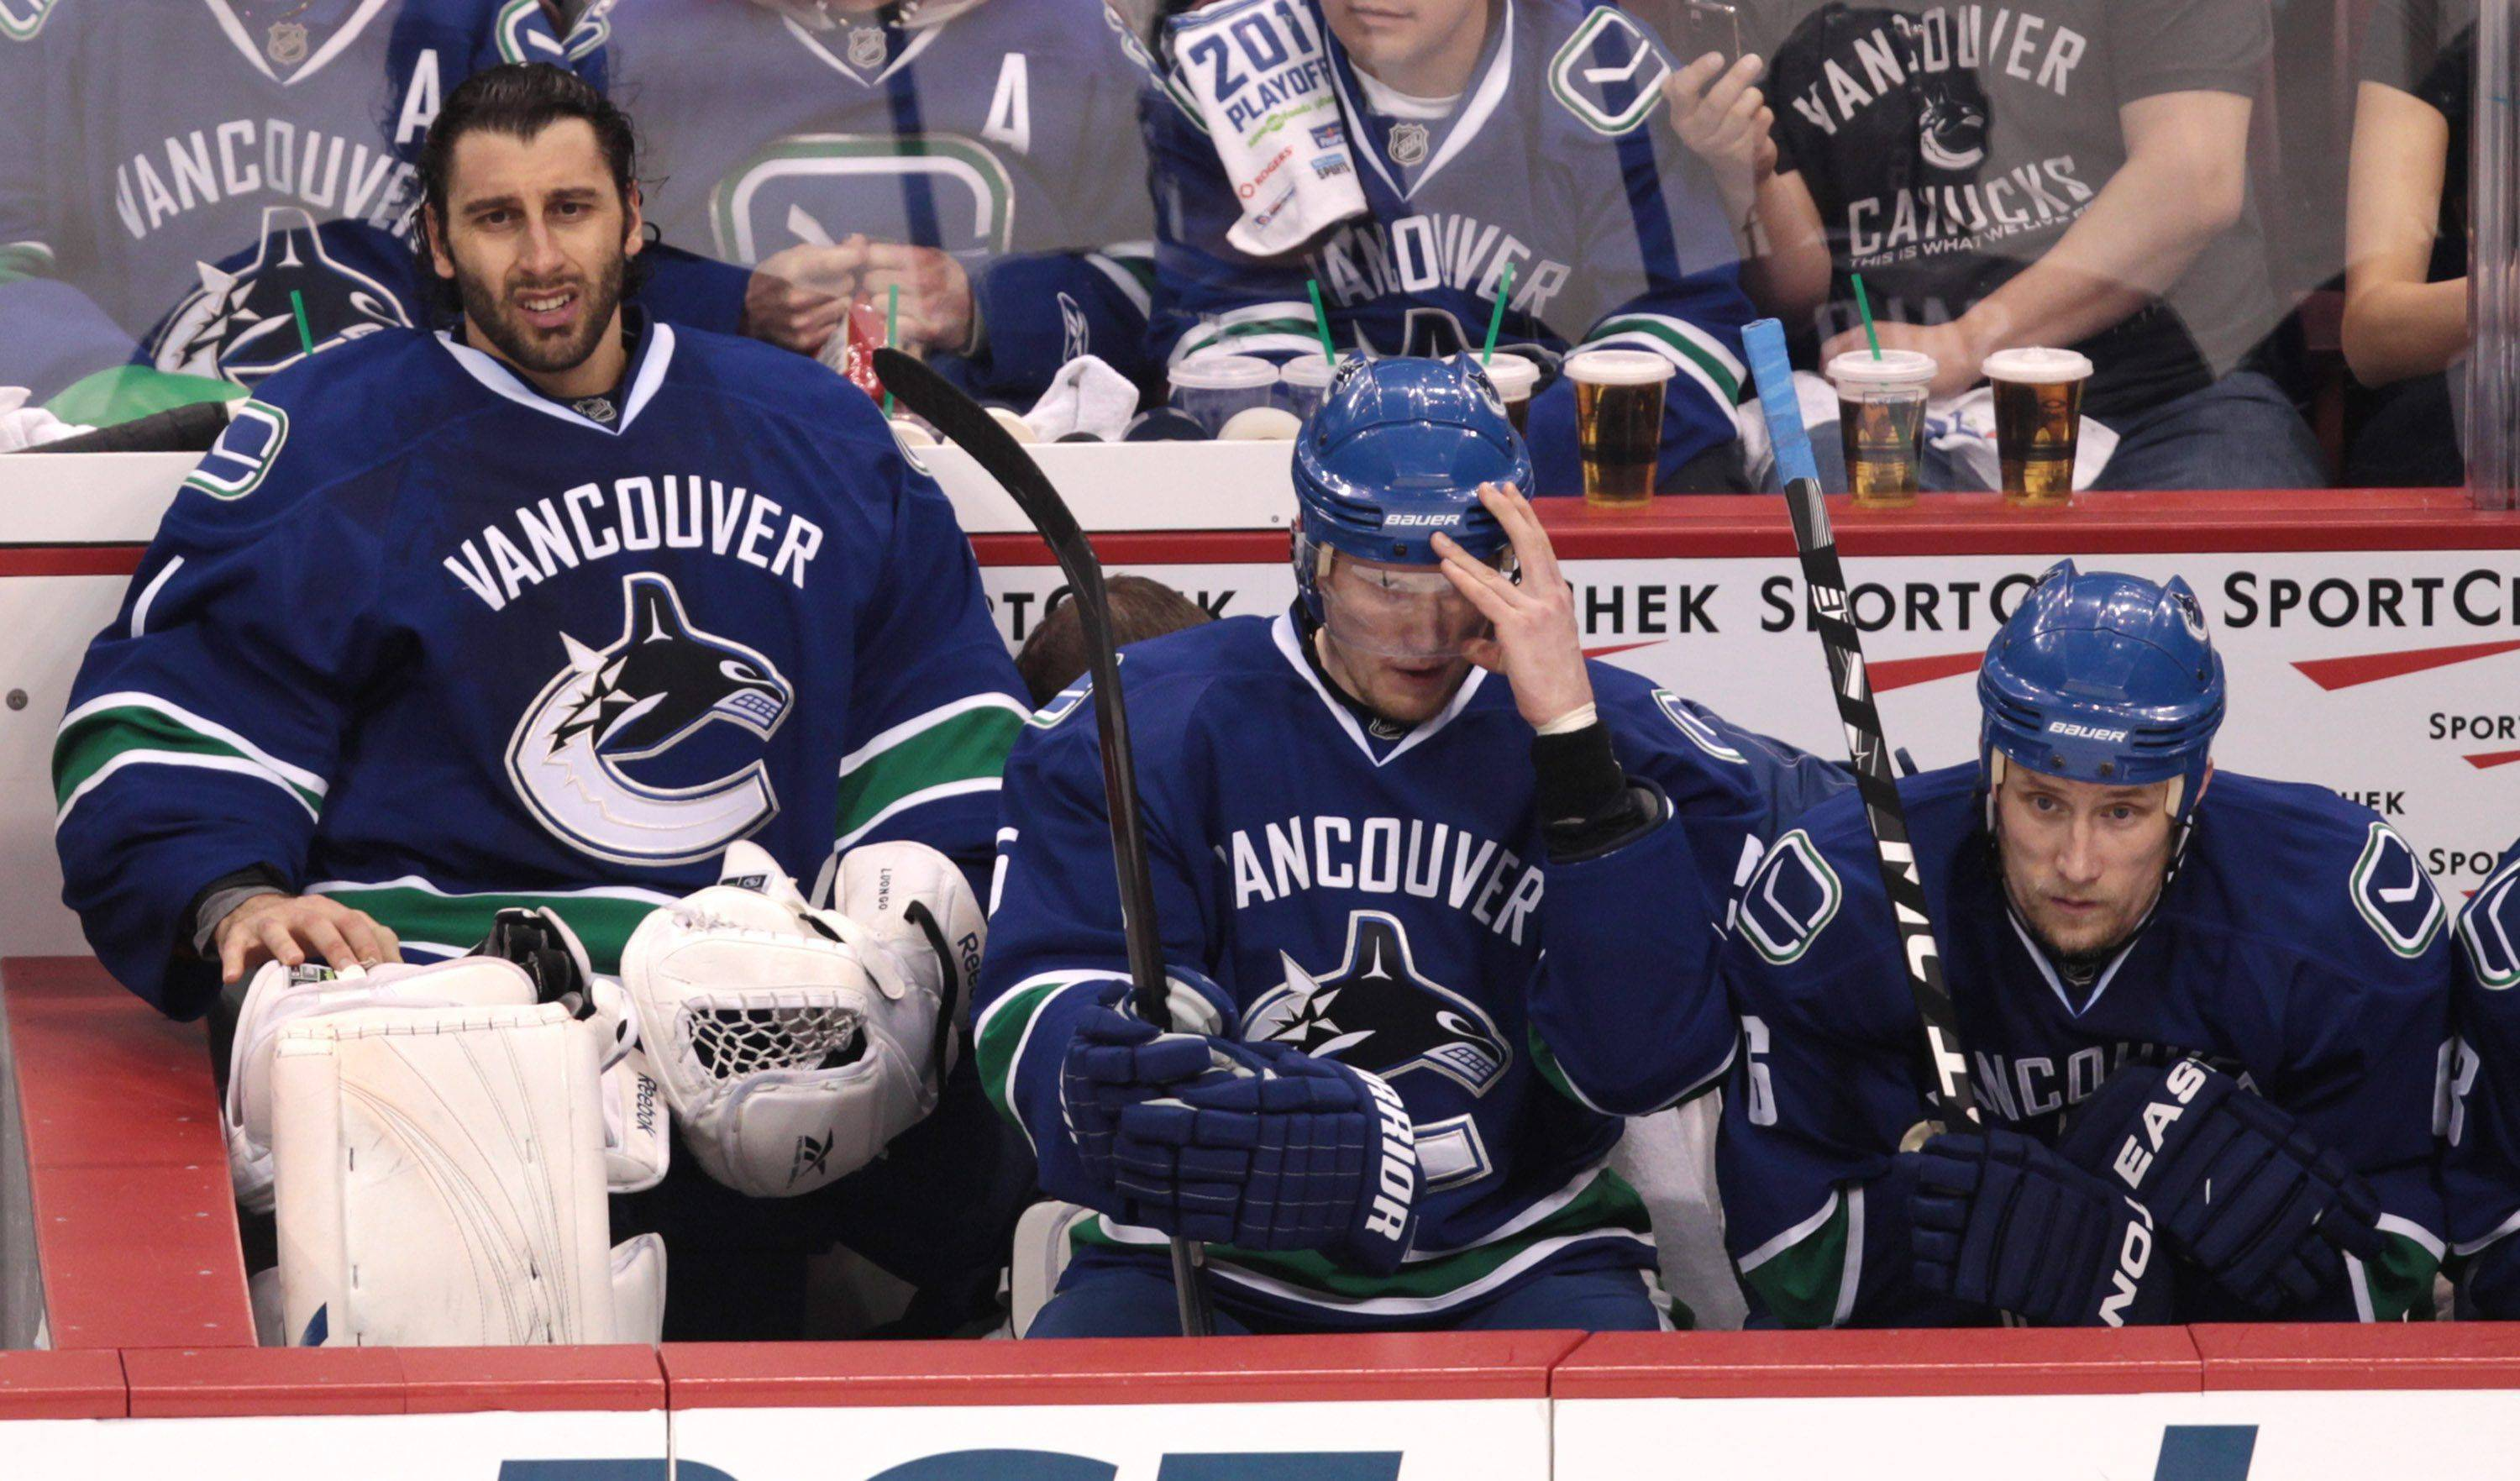 Vancouver Canucks goalie Roberto Luongo, left, sits on the bench after being replaced by backup goalie Cory Schneider, as Christian Ehrhoff, center, and Sami Salo sit next to him during the second period against the Blackhawks in Game 5 of their NHL playoffs series Thursday.